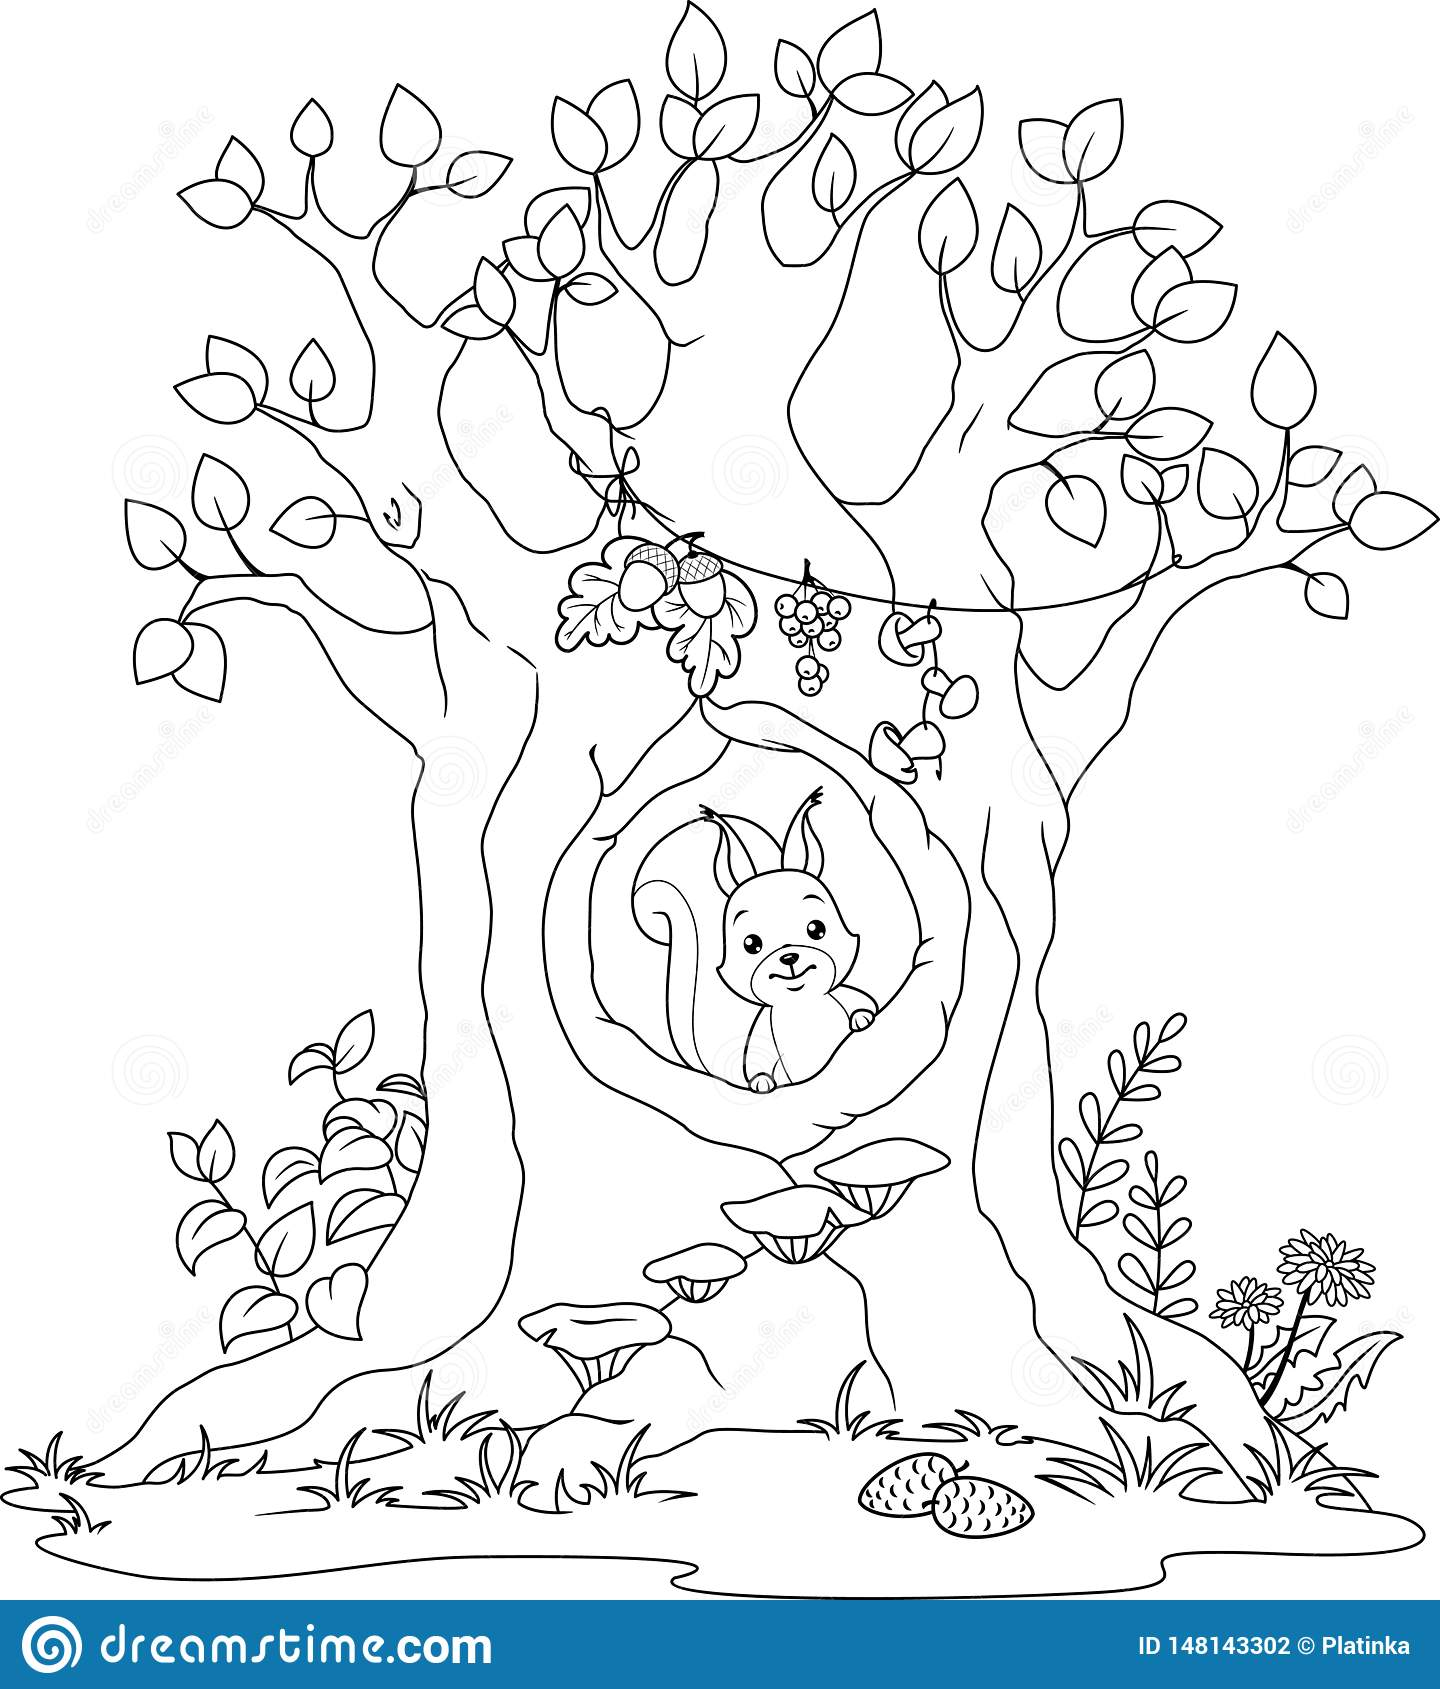 Squirrel coloring page | Free Printable Coloring Pages | 1689x1440